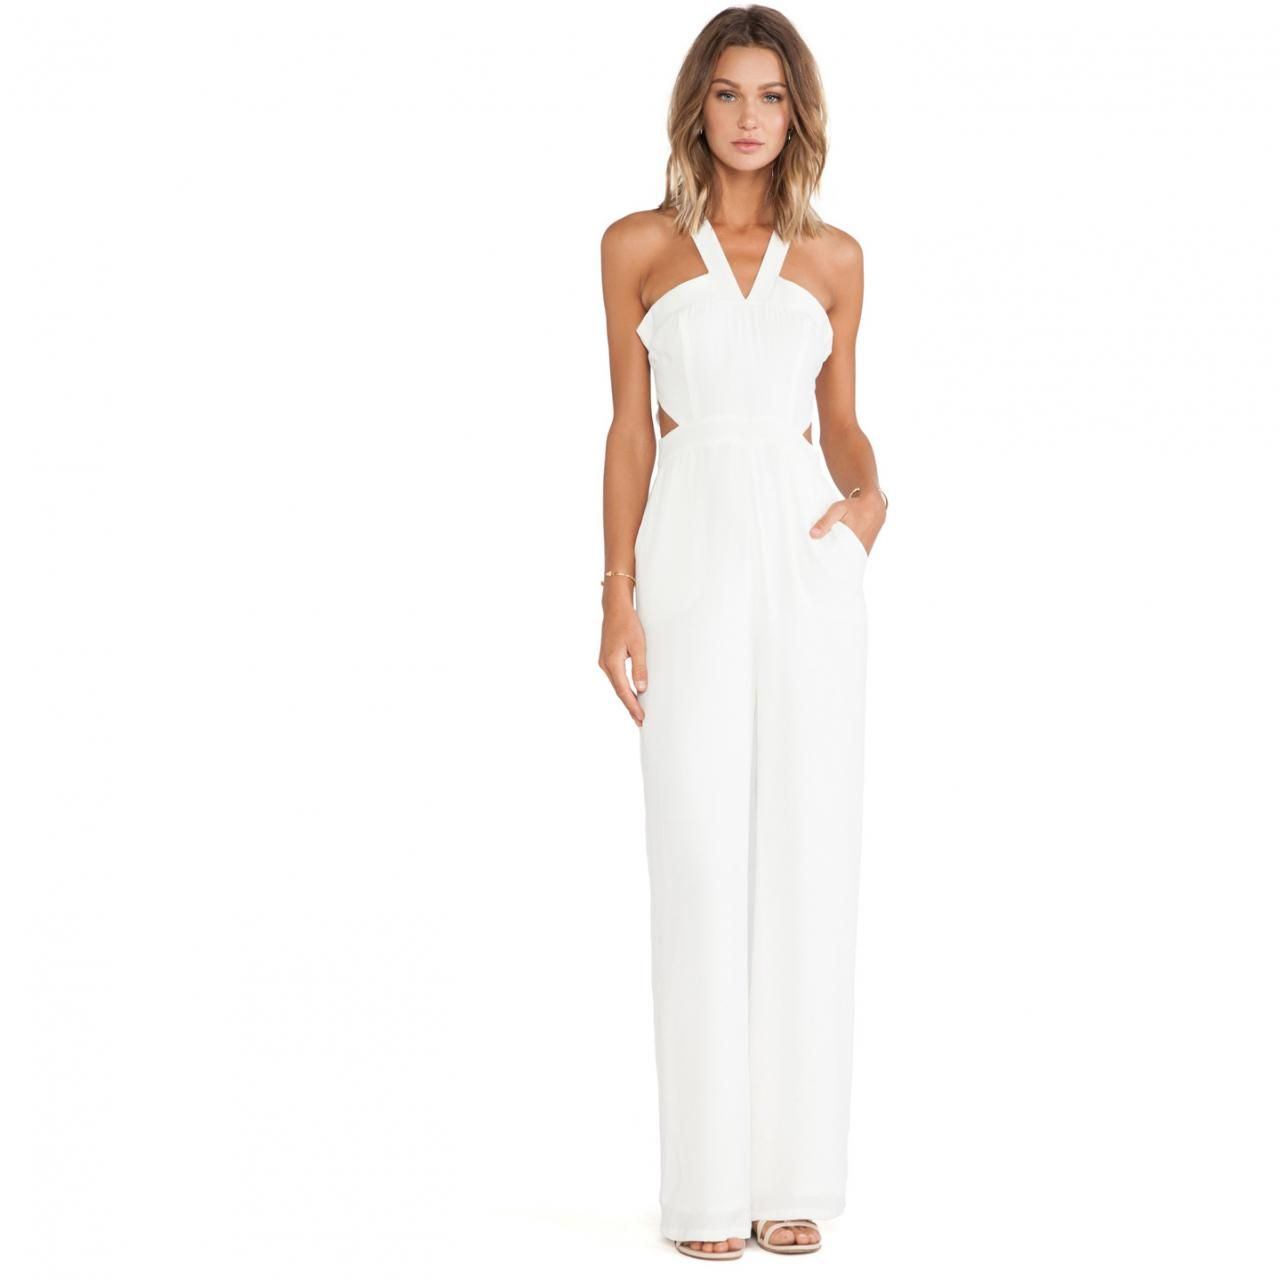 Olivia Palermo wearing Lovers + Friends Adore You Jumpsuit